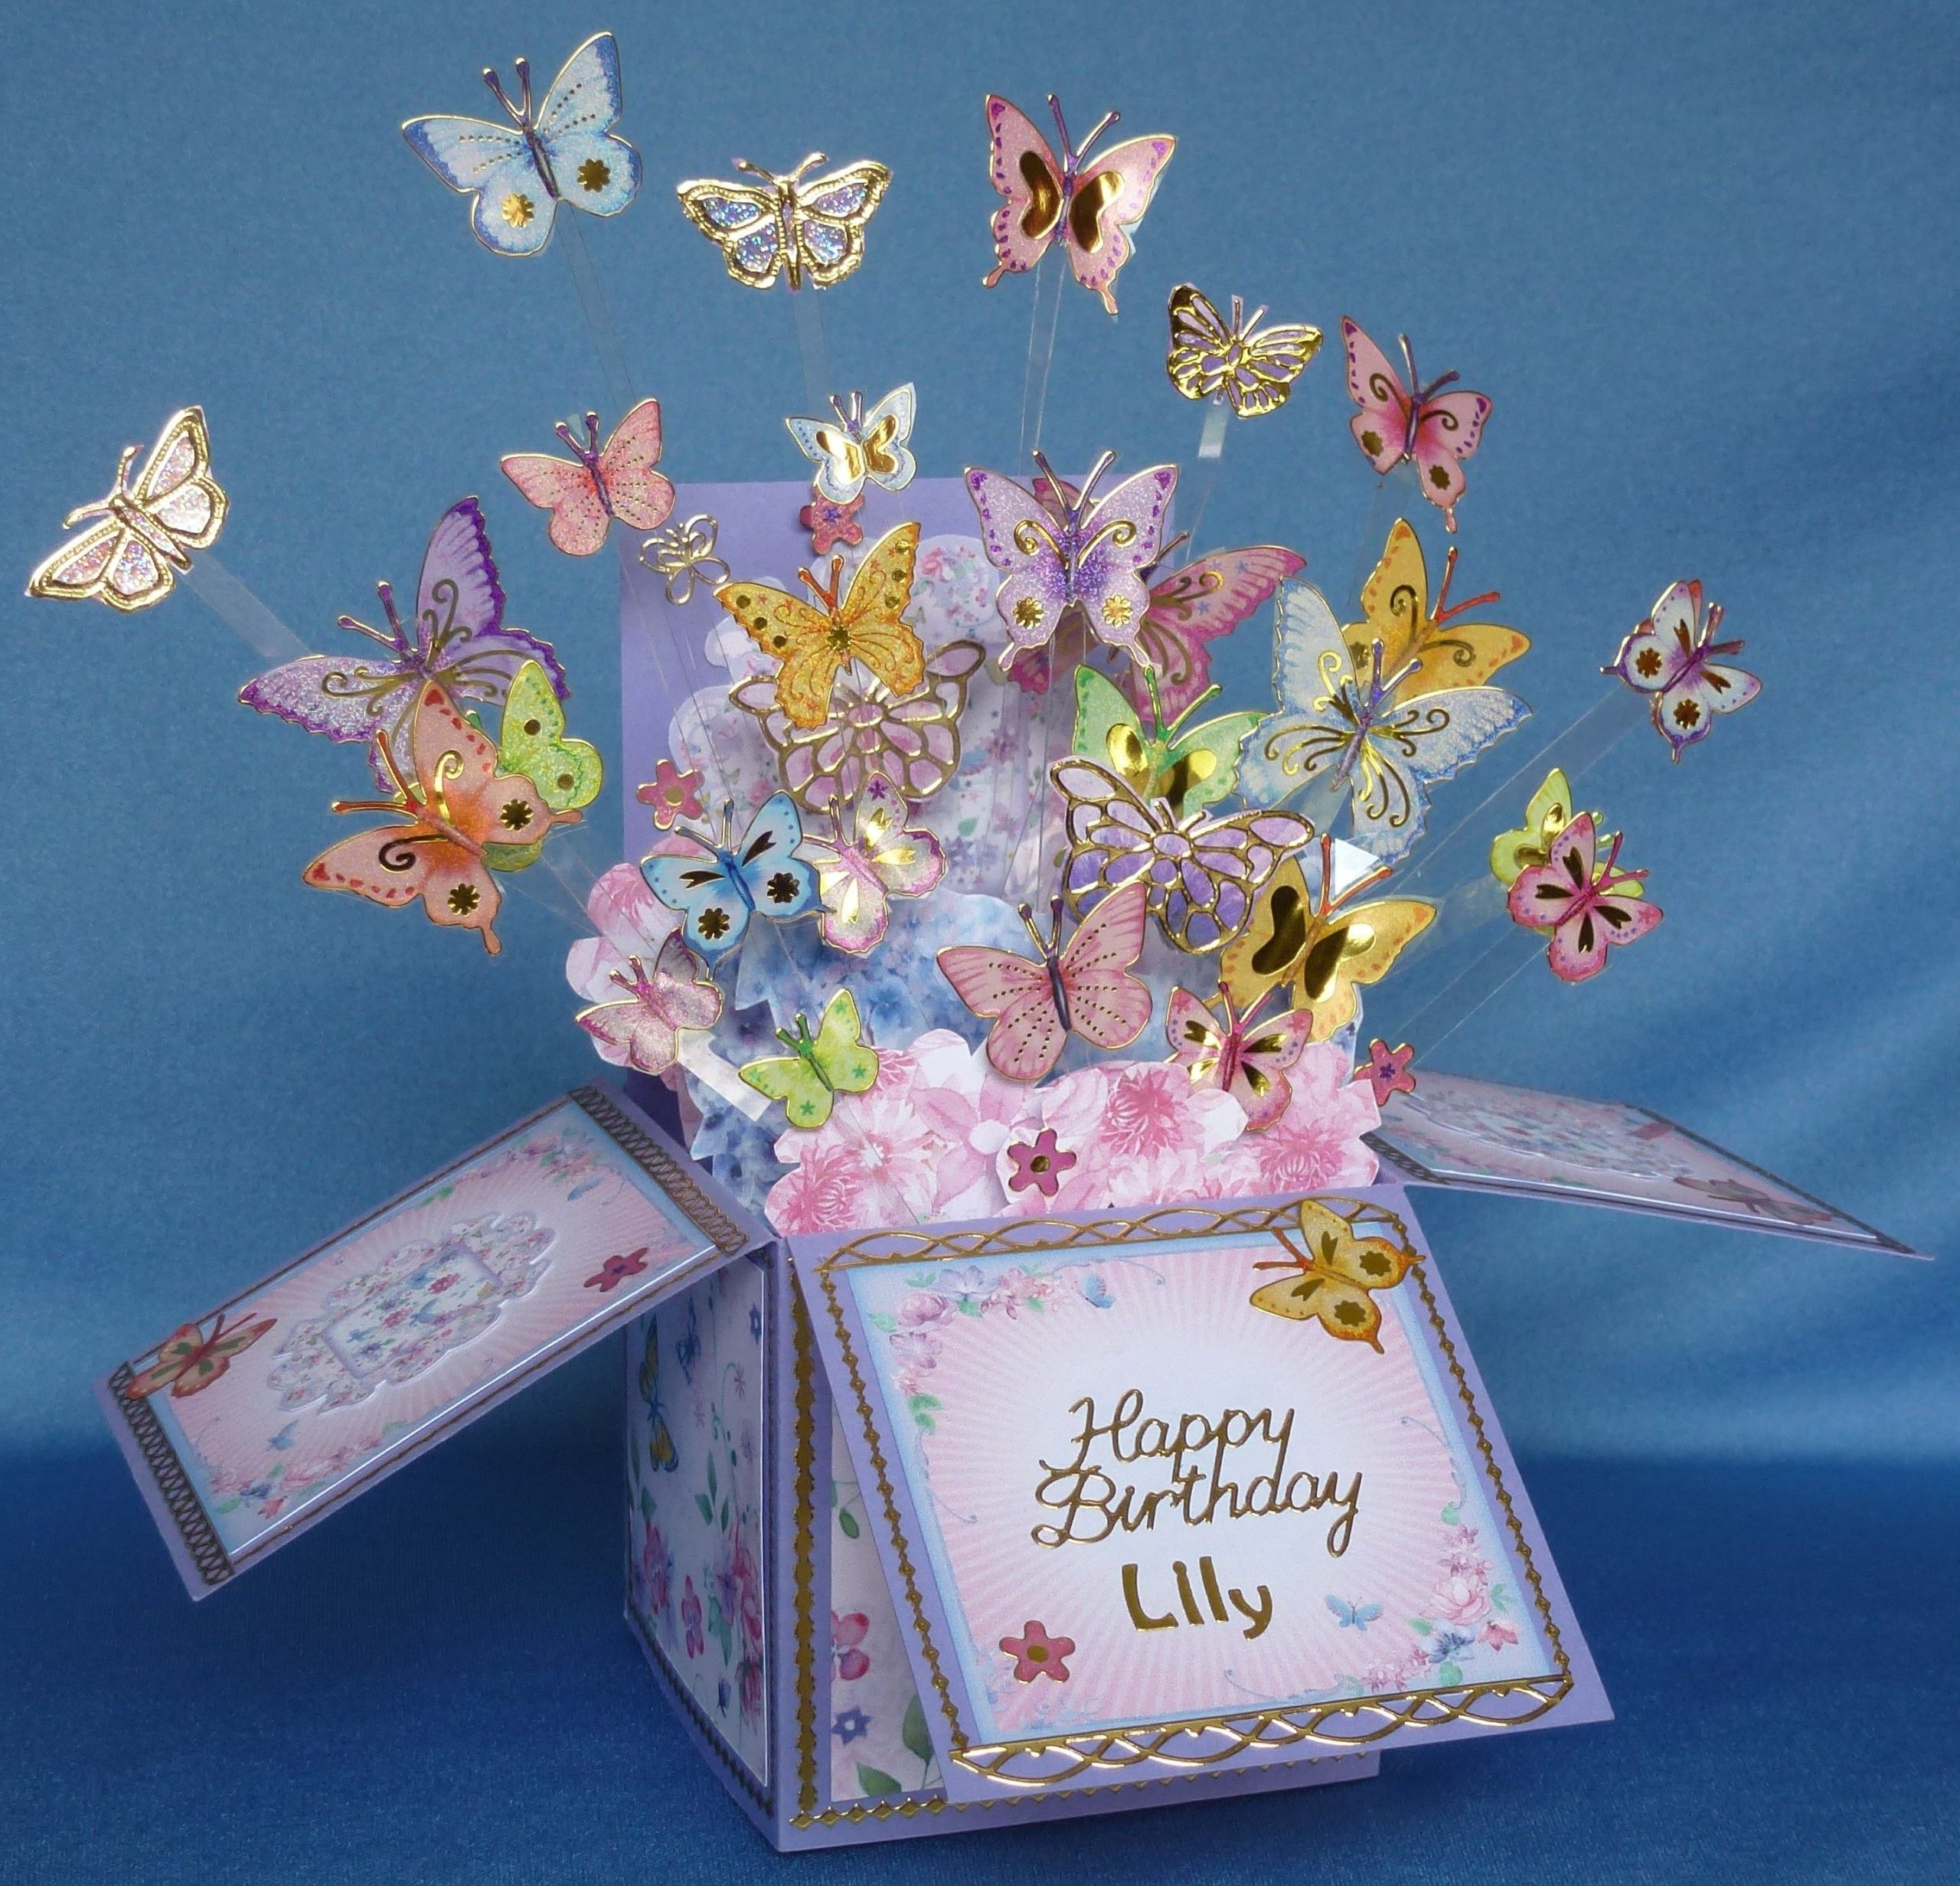 Park Art|My WordPress Blog_Pop Up Gift Box With Butterfly